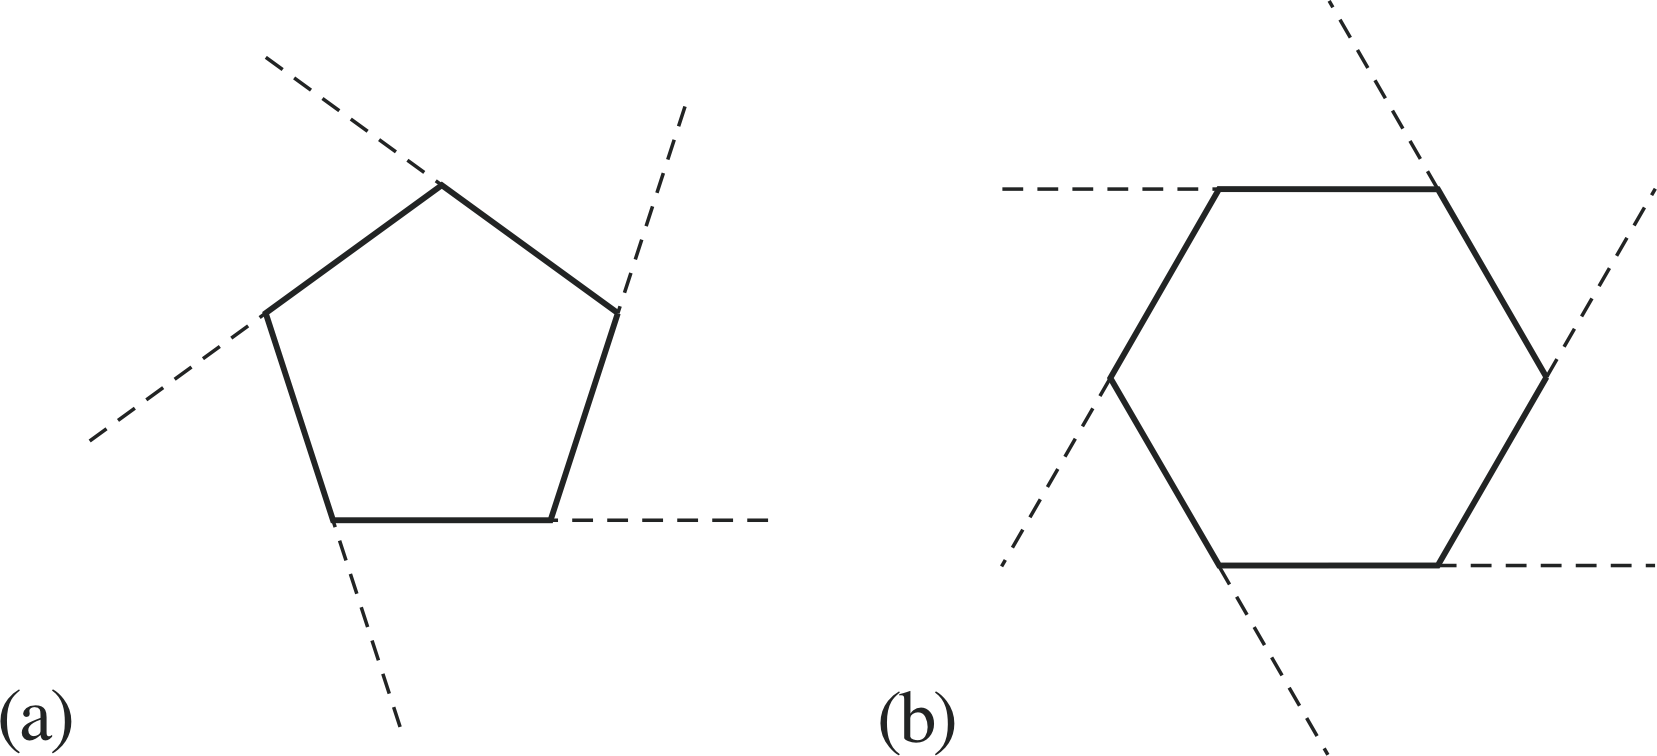 Angles In Polygons Exterior Angles In Convex Polygons Read Geometry Ppt 8 1 Angles Of Polygons